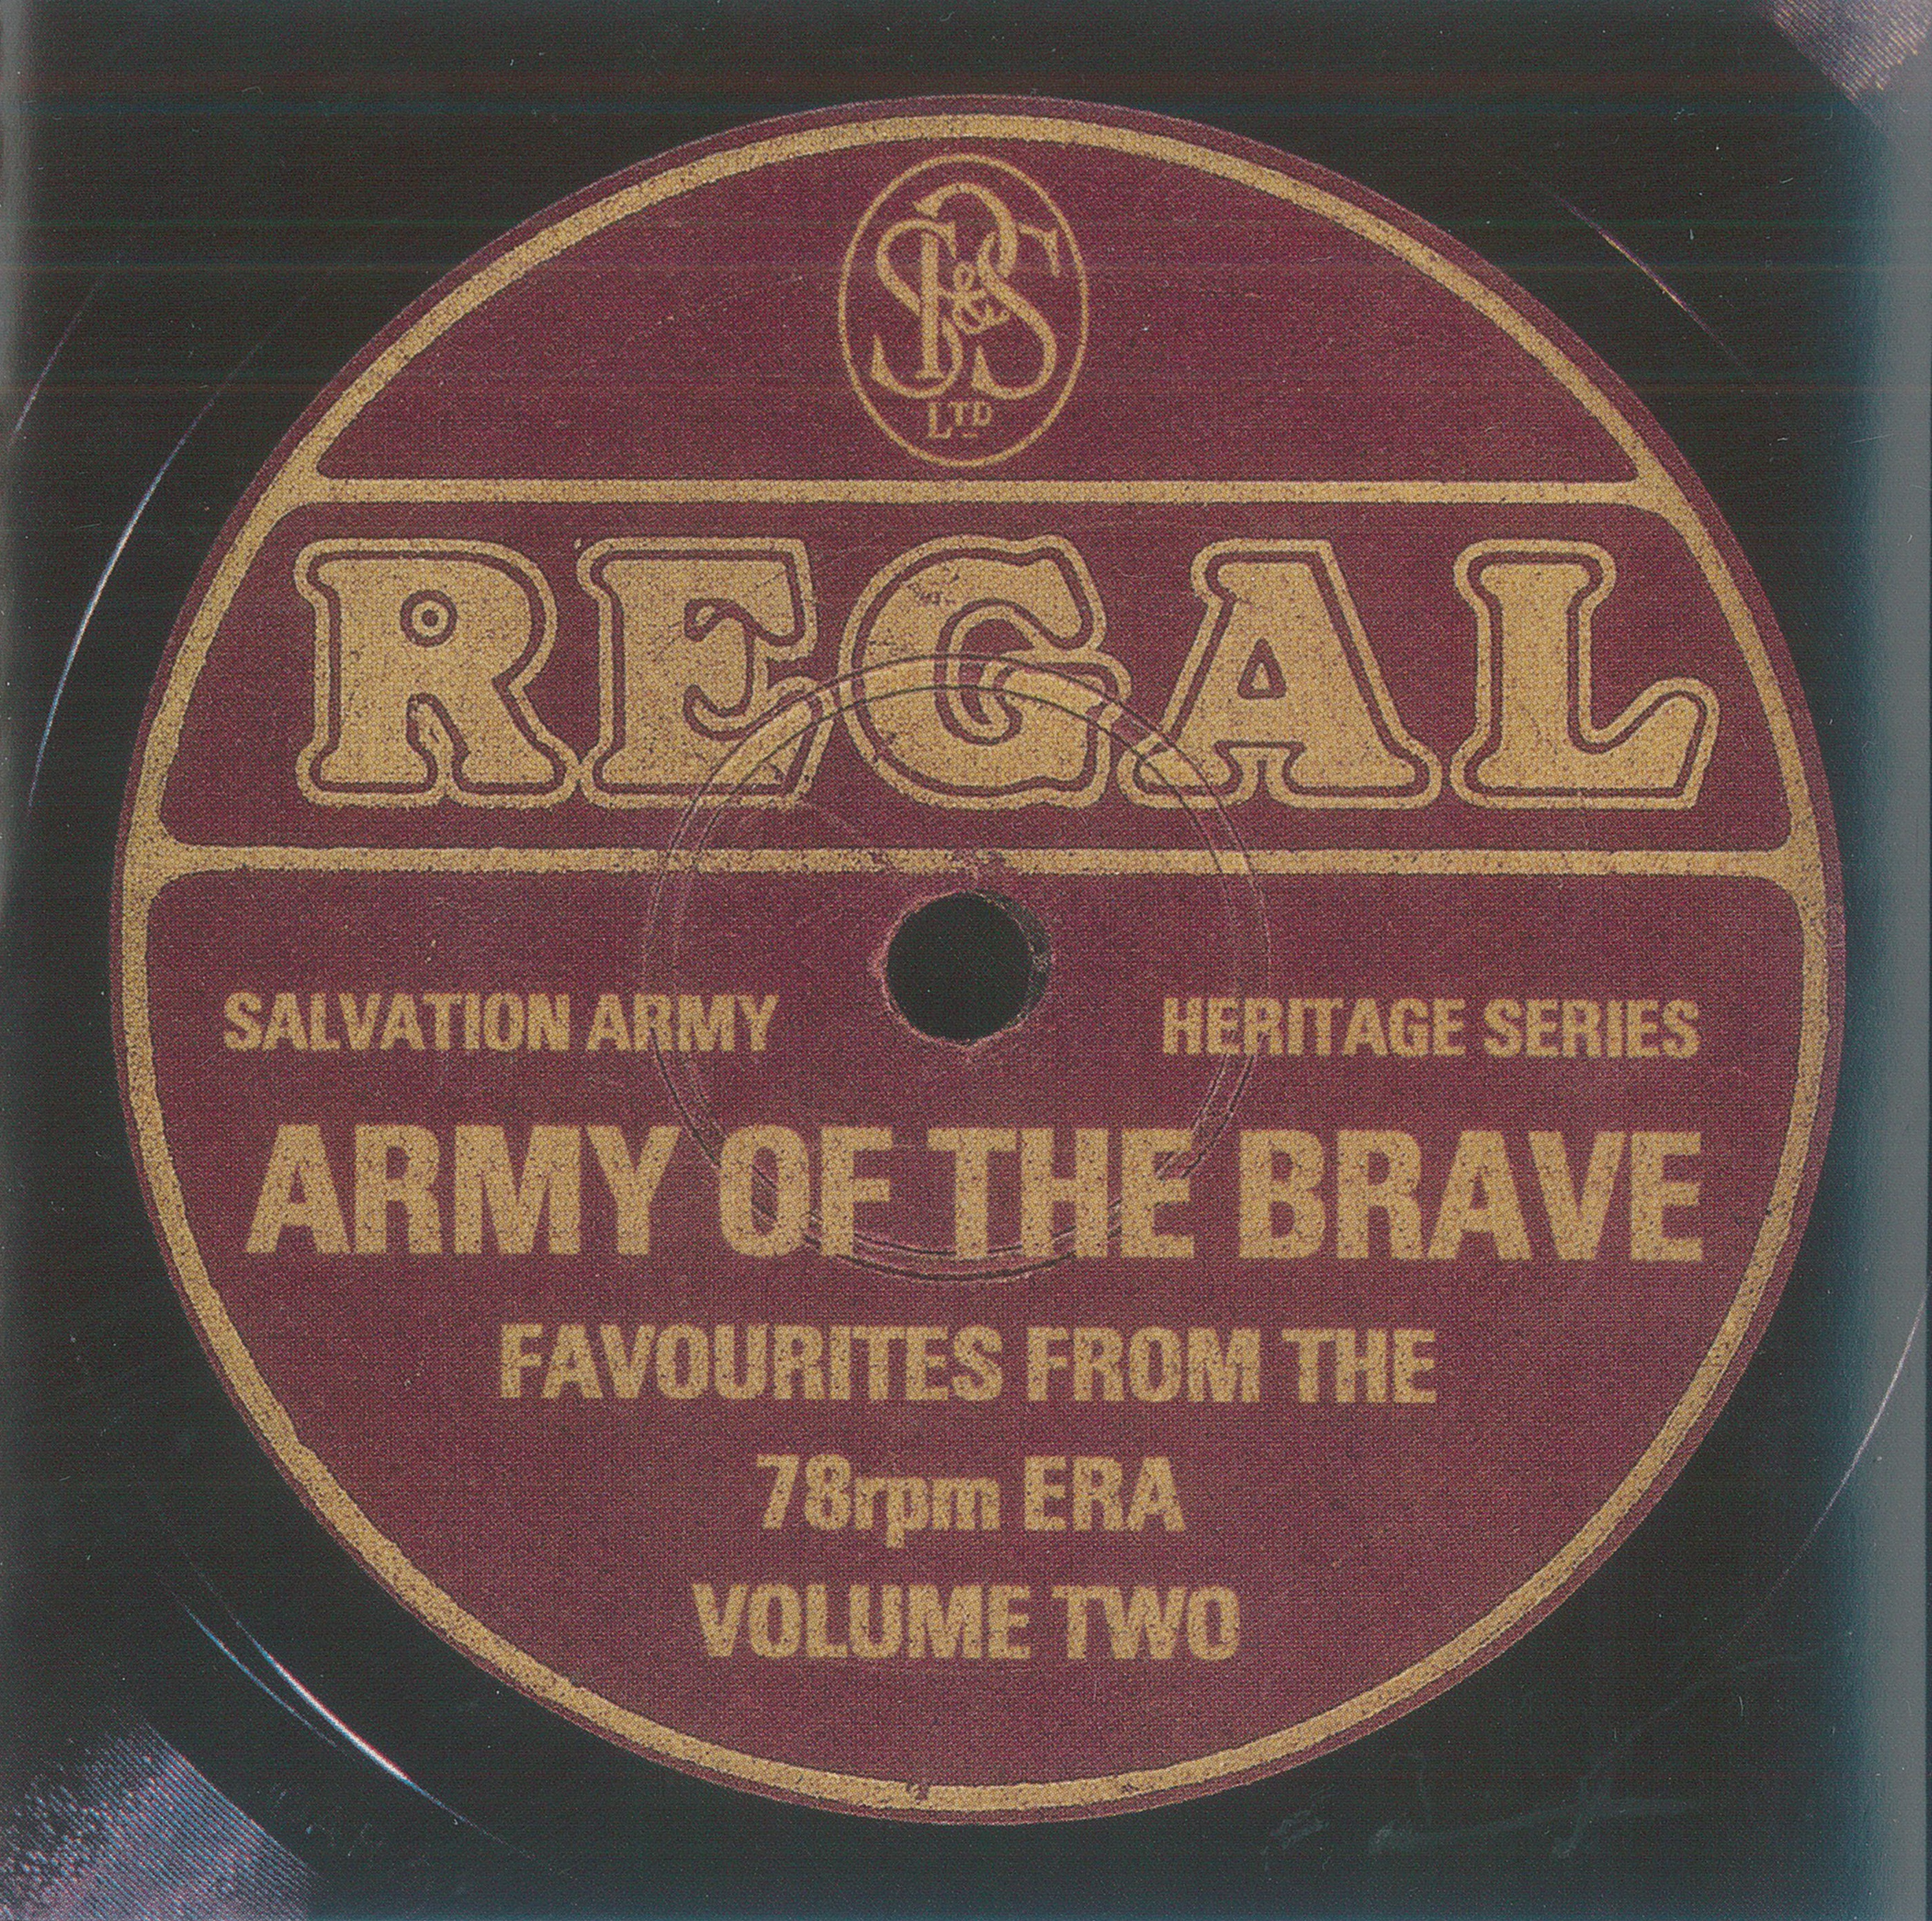 Army of the Brave - Download